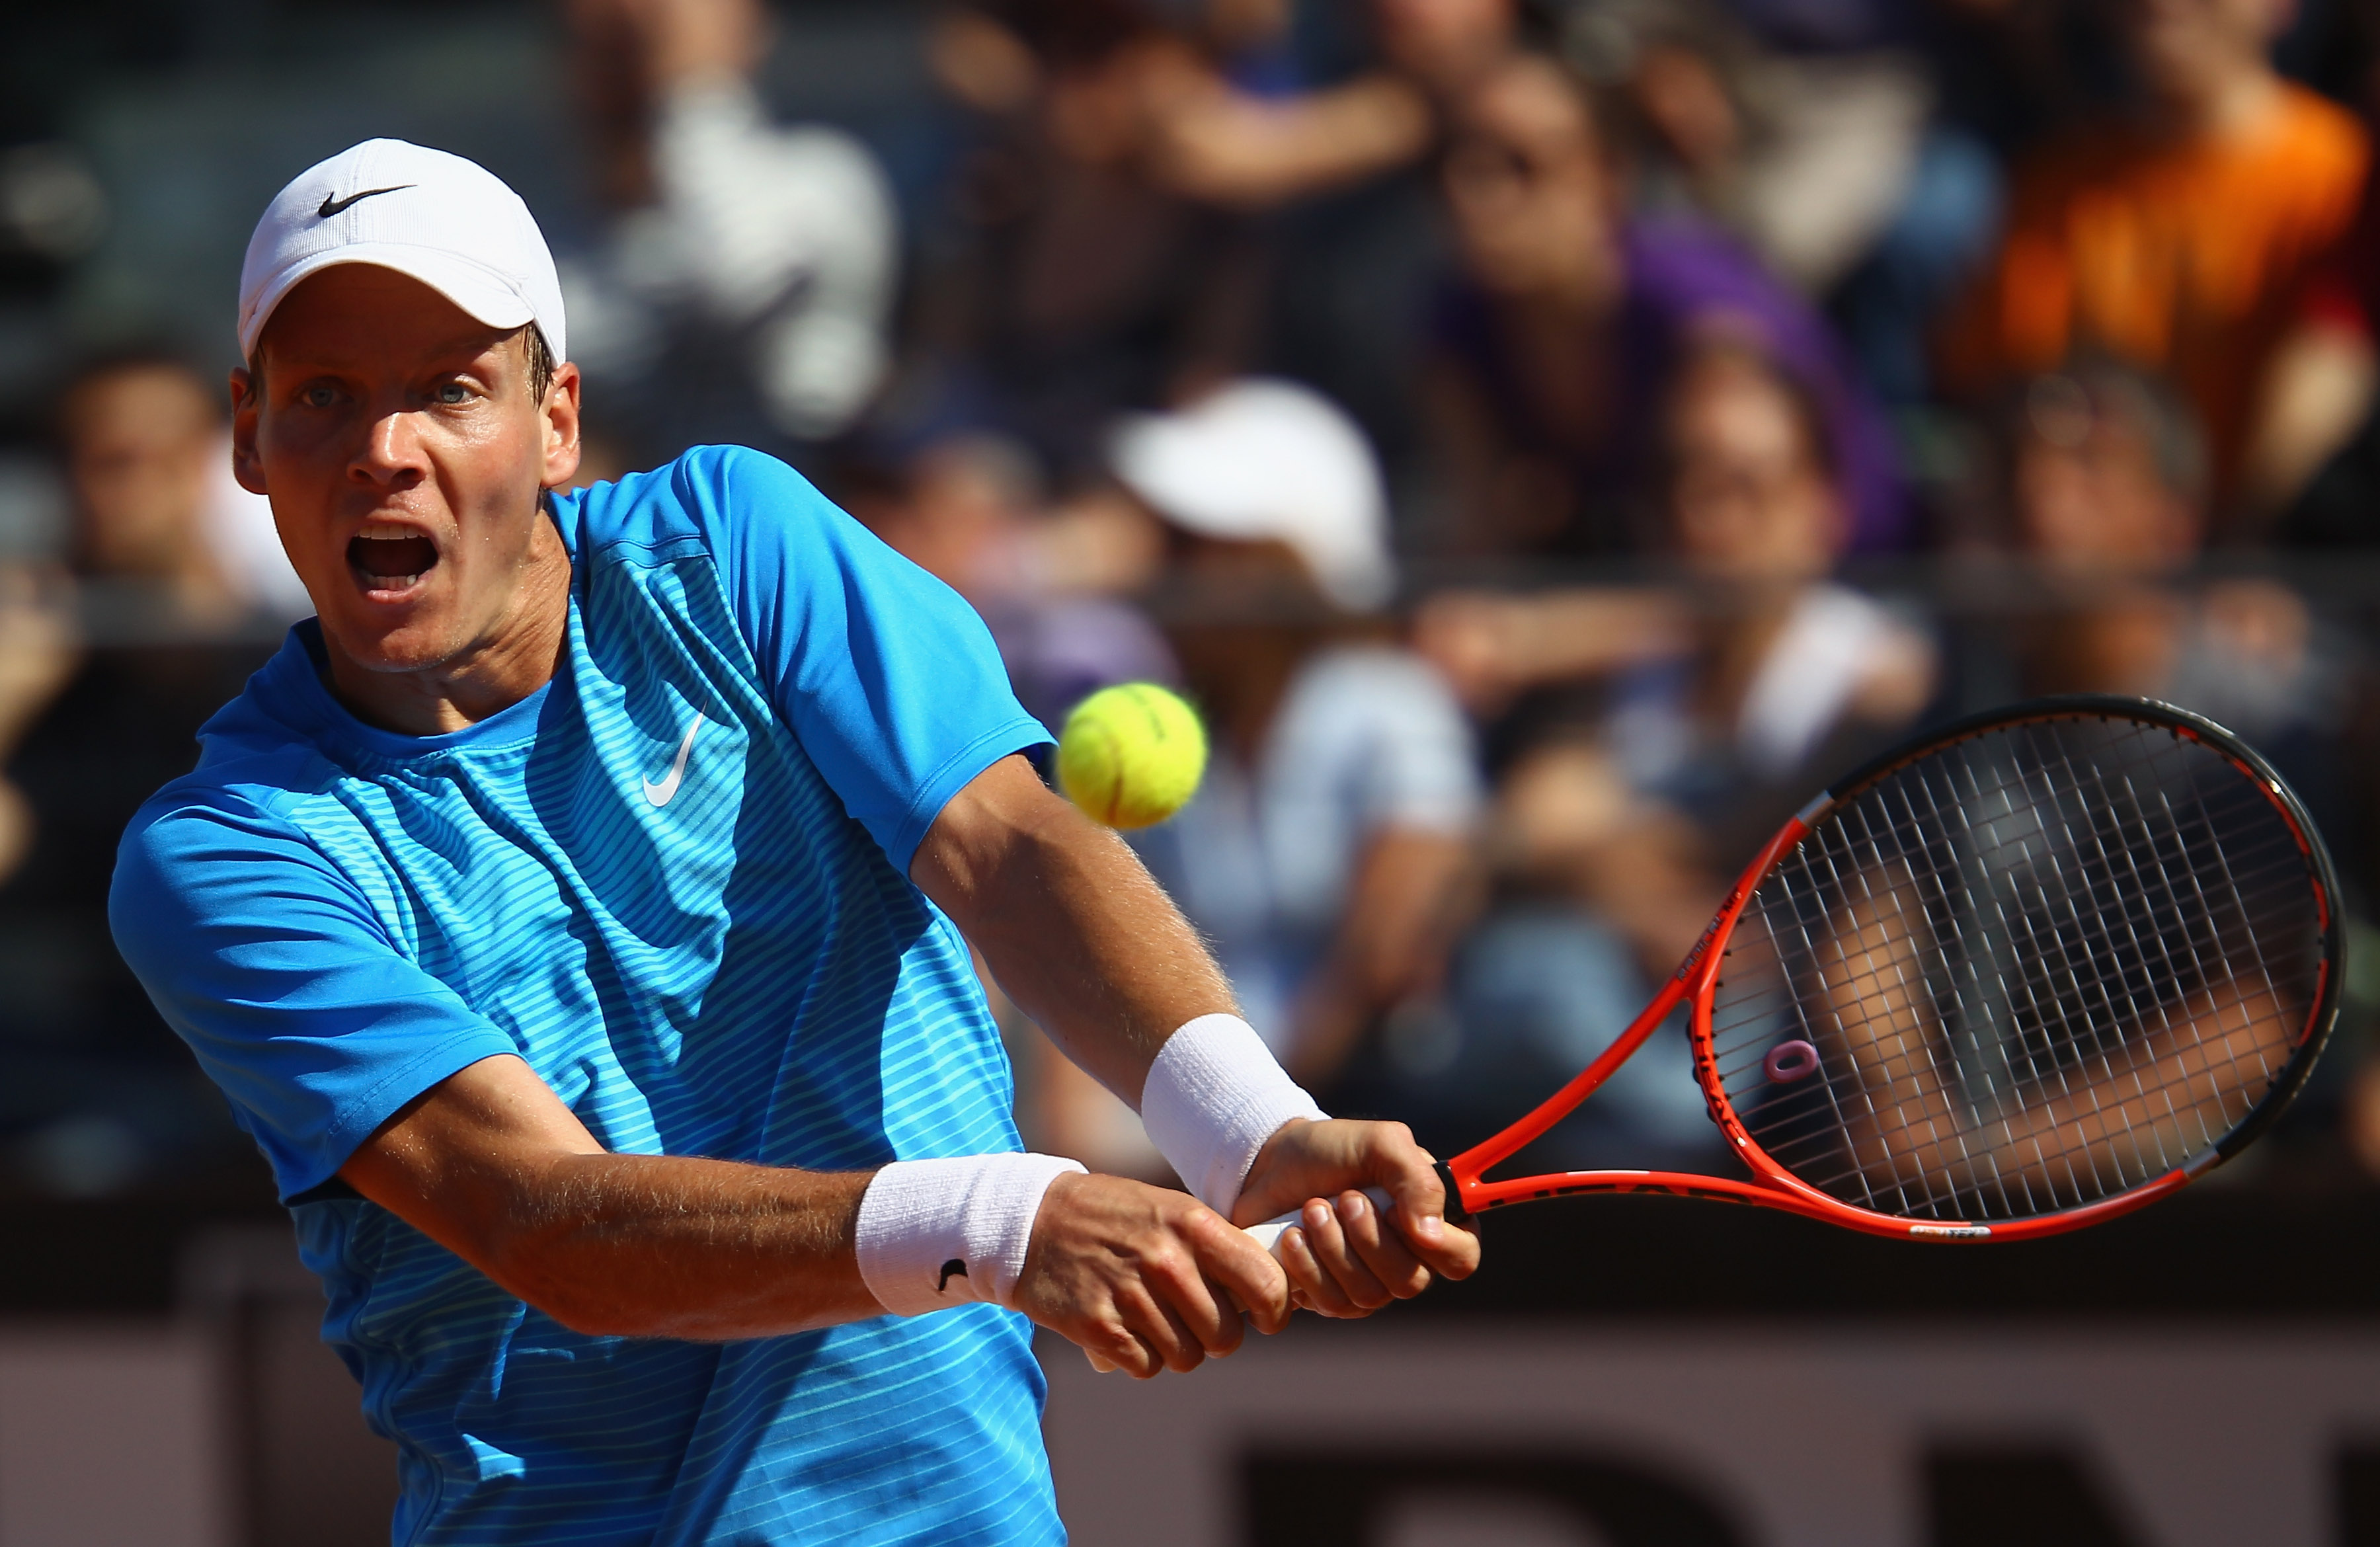 ROME, ITALY - MAY 10:  Tomas Berdych of Czech Republic plays a backhand during his second round match against Juan Monaco of Argentina during day three of the Internazoinali BNL D'Italia at the Foro Italico Tennis Centre on May 10, 2011 in Rome, Italy.  (